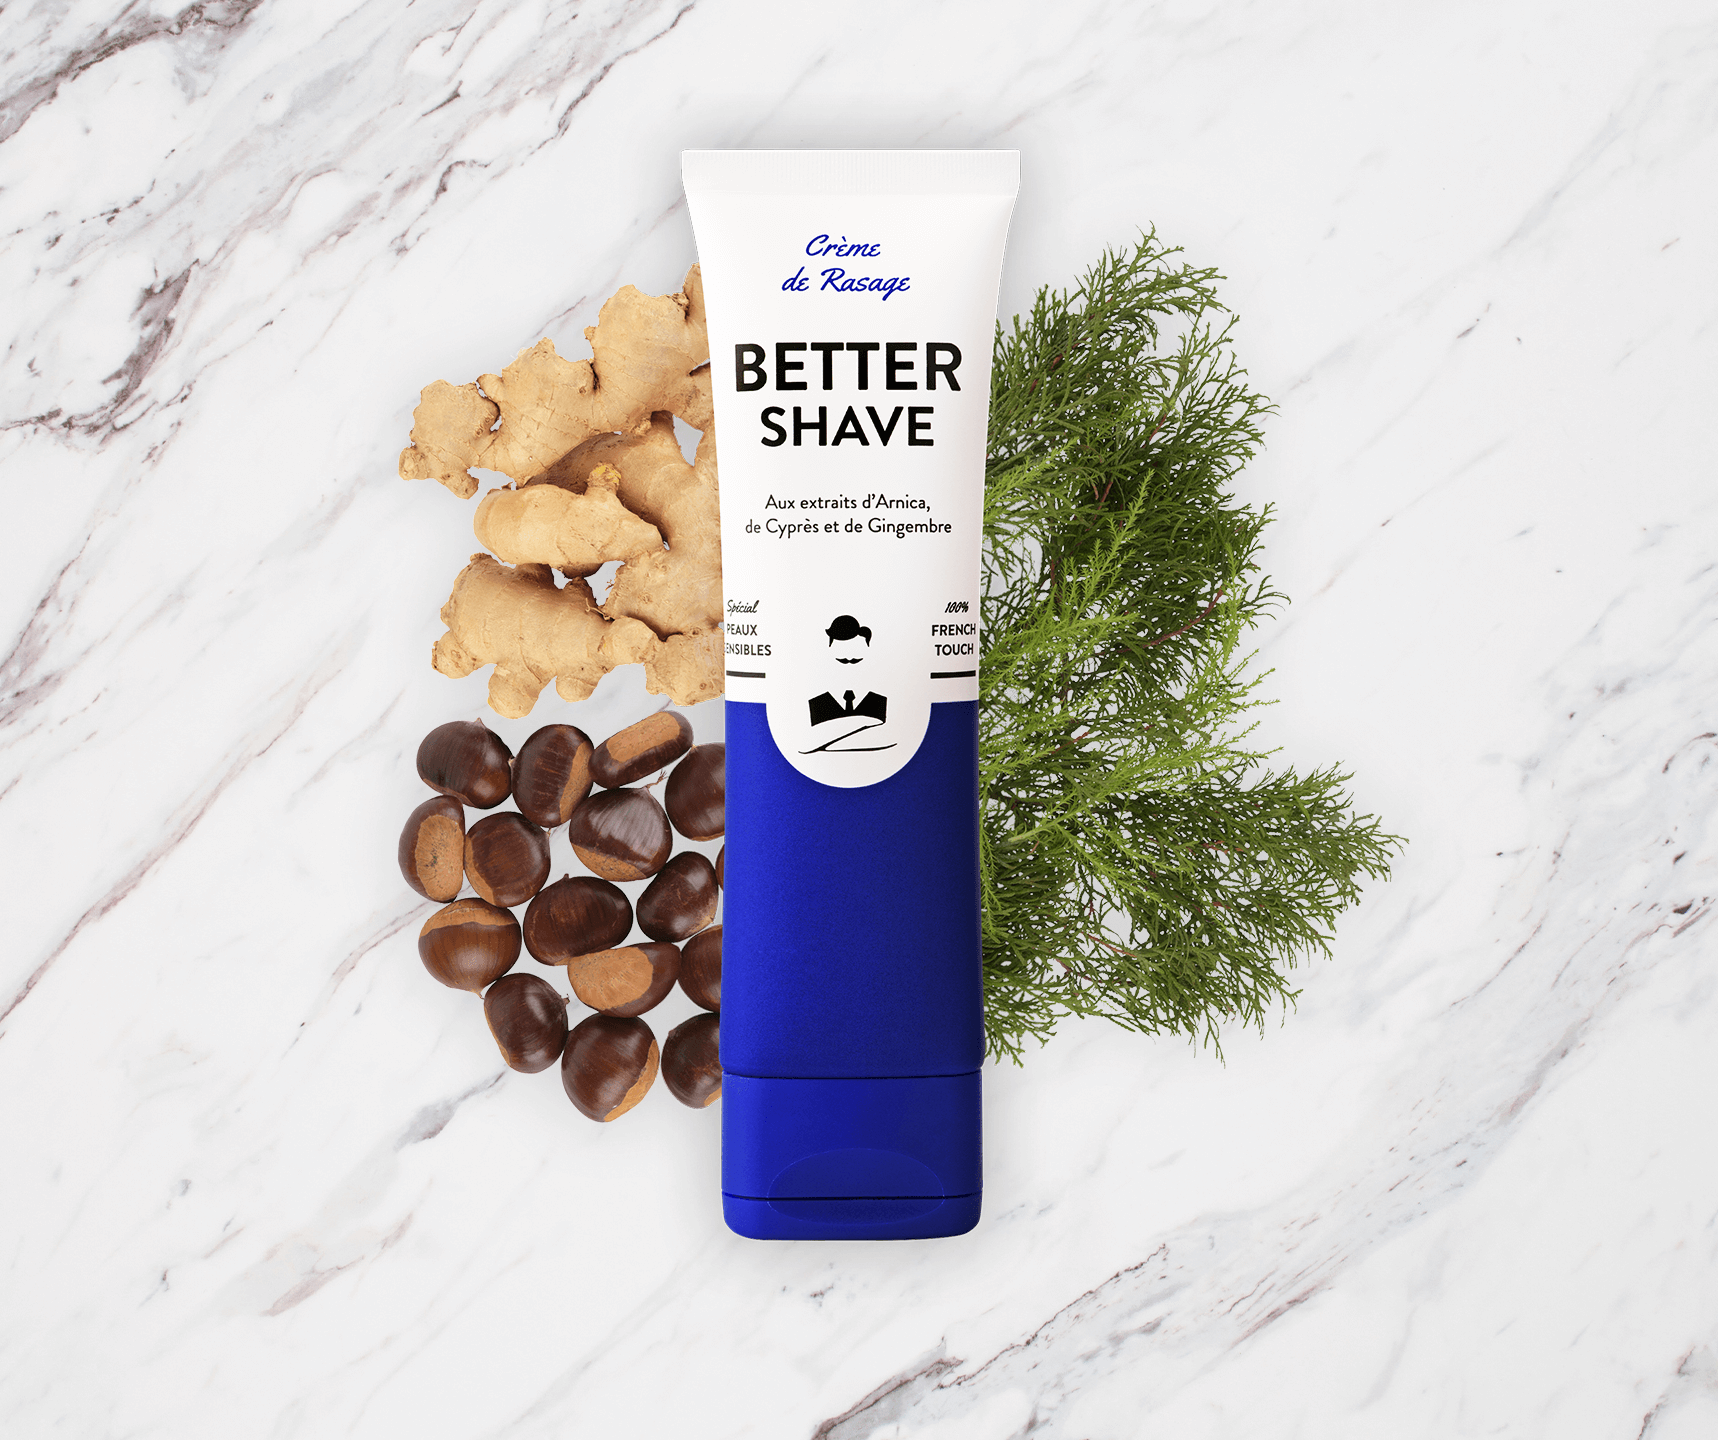 BETTER SHAVE Mr Barbier Better-Shave-Creme-Rasage-Ingredients-Fond-Marbre